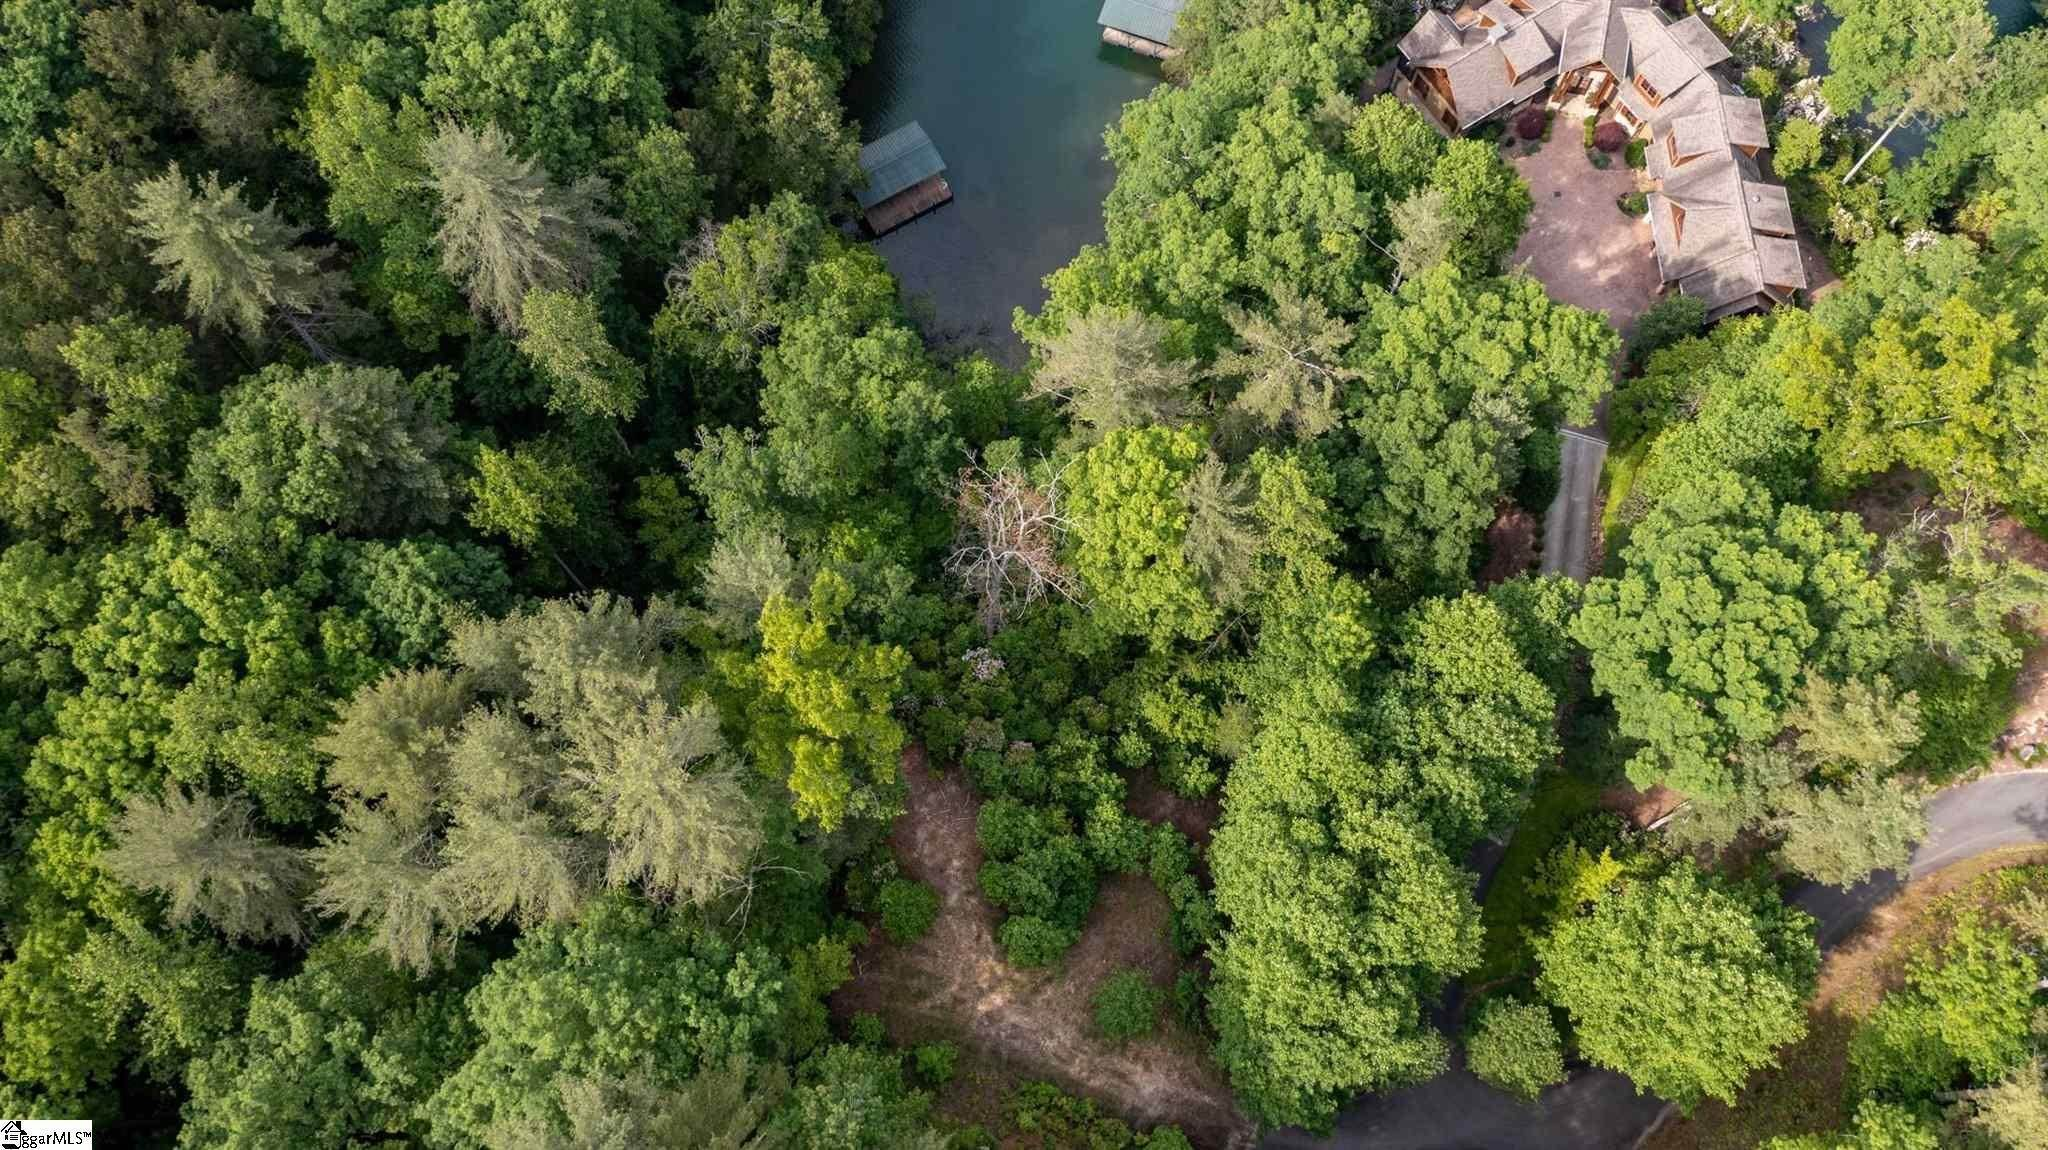 3. Residential Lot for Sale at The Cliffs At Keowee Falls North, Salem, SC 29676